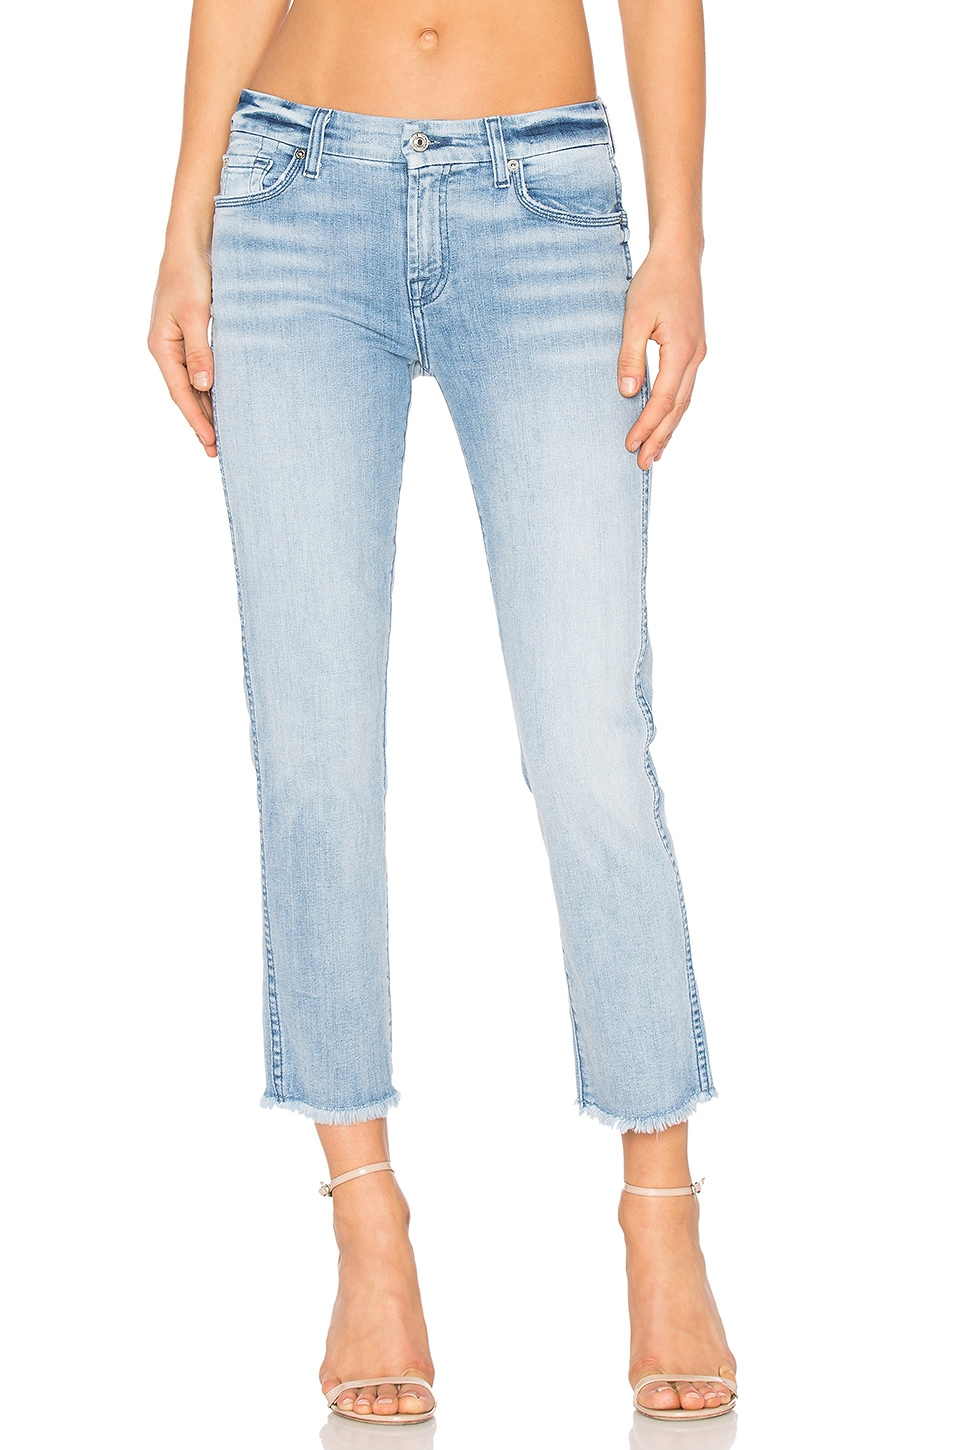 7 For All Mankind Distressed Unfinished Hem Ankle Straight in Bright Bristol